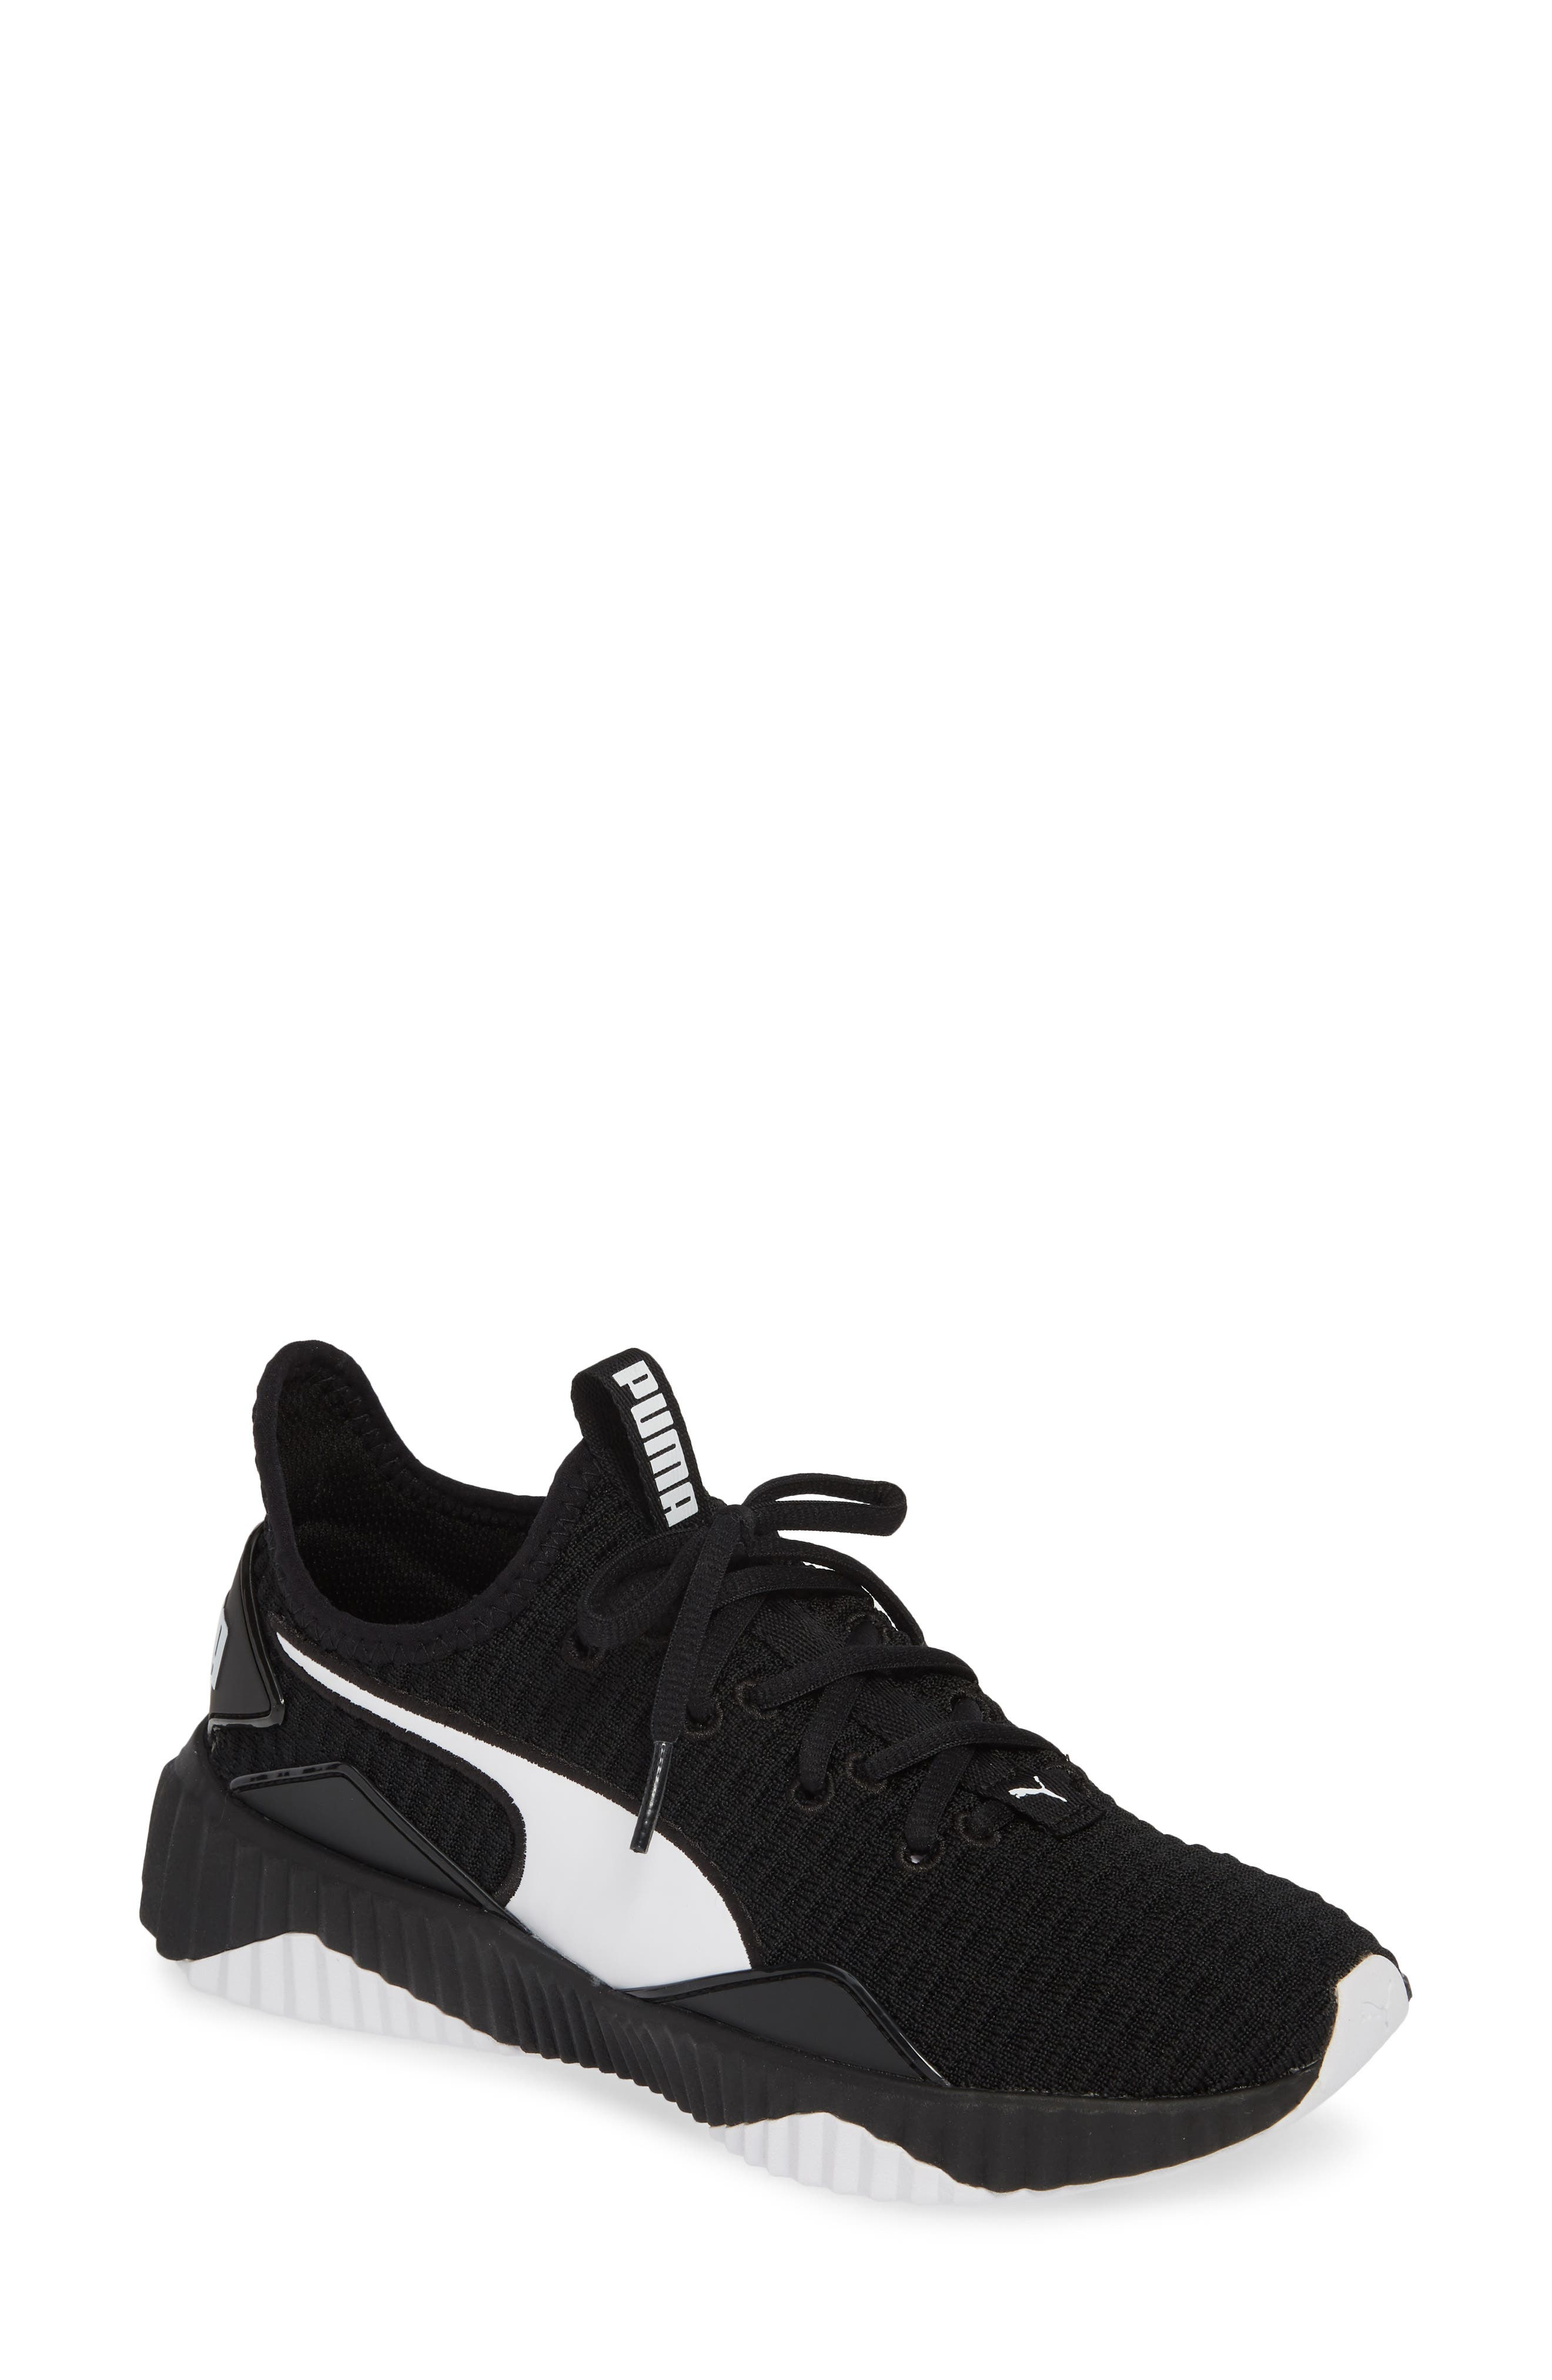 PUMA Shoes   Sneakers  4f2261db9